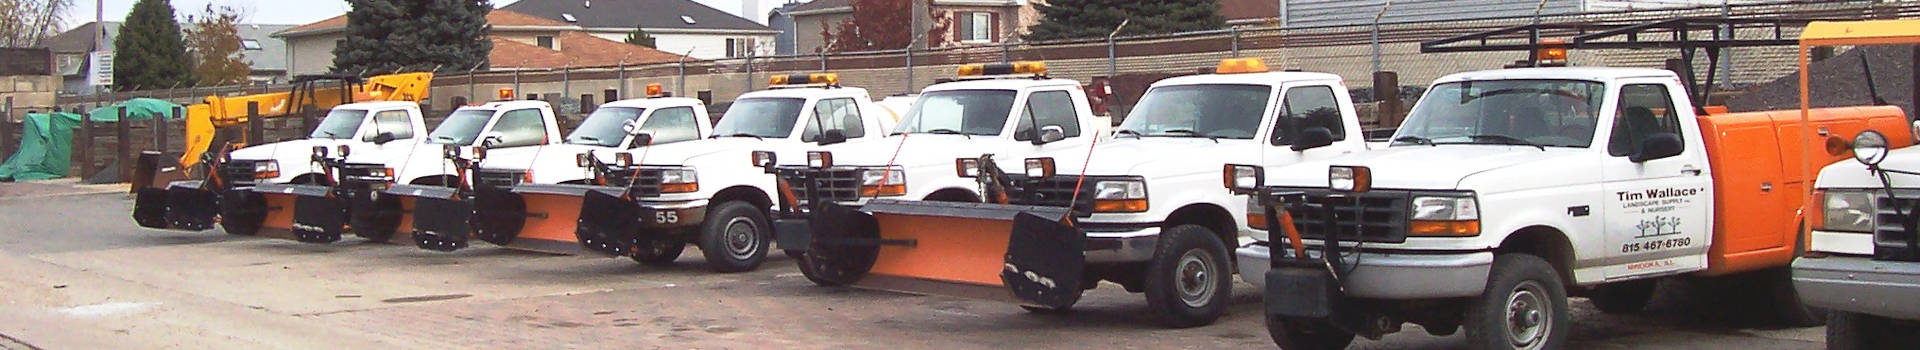 Commercial Snow Plowing and Salting